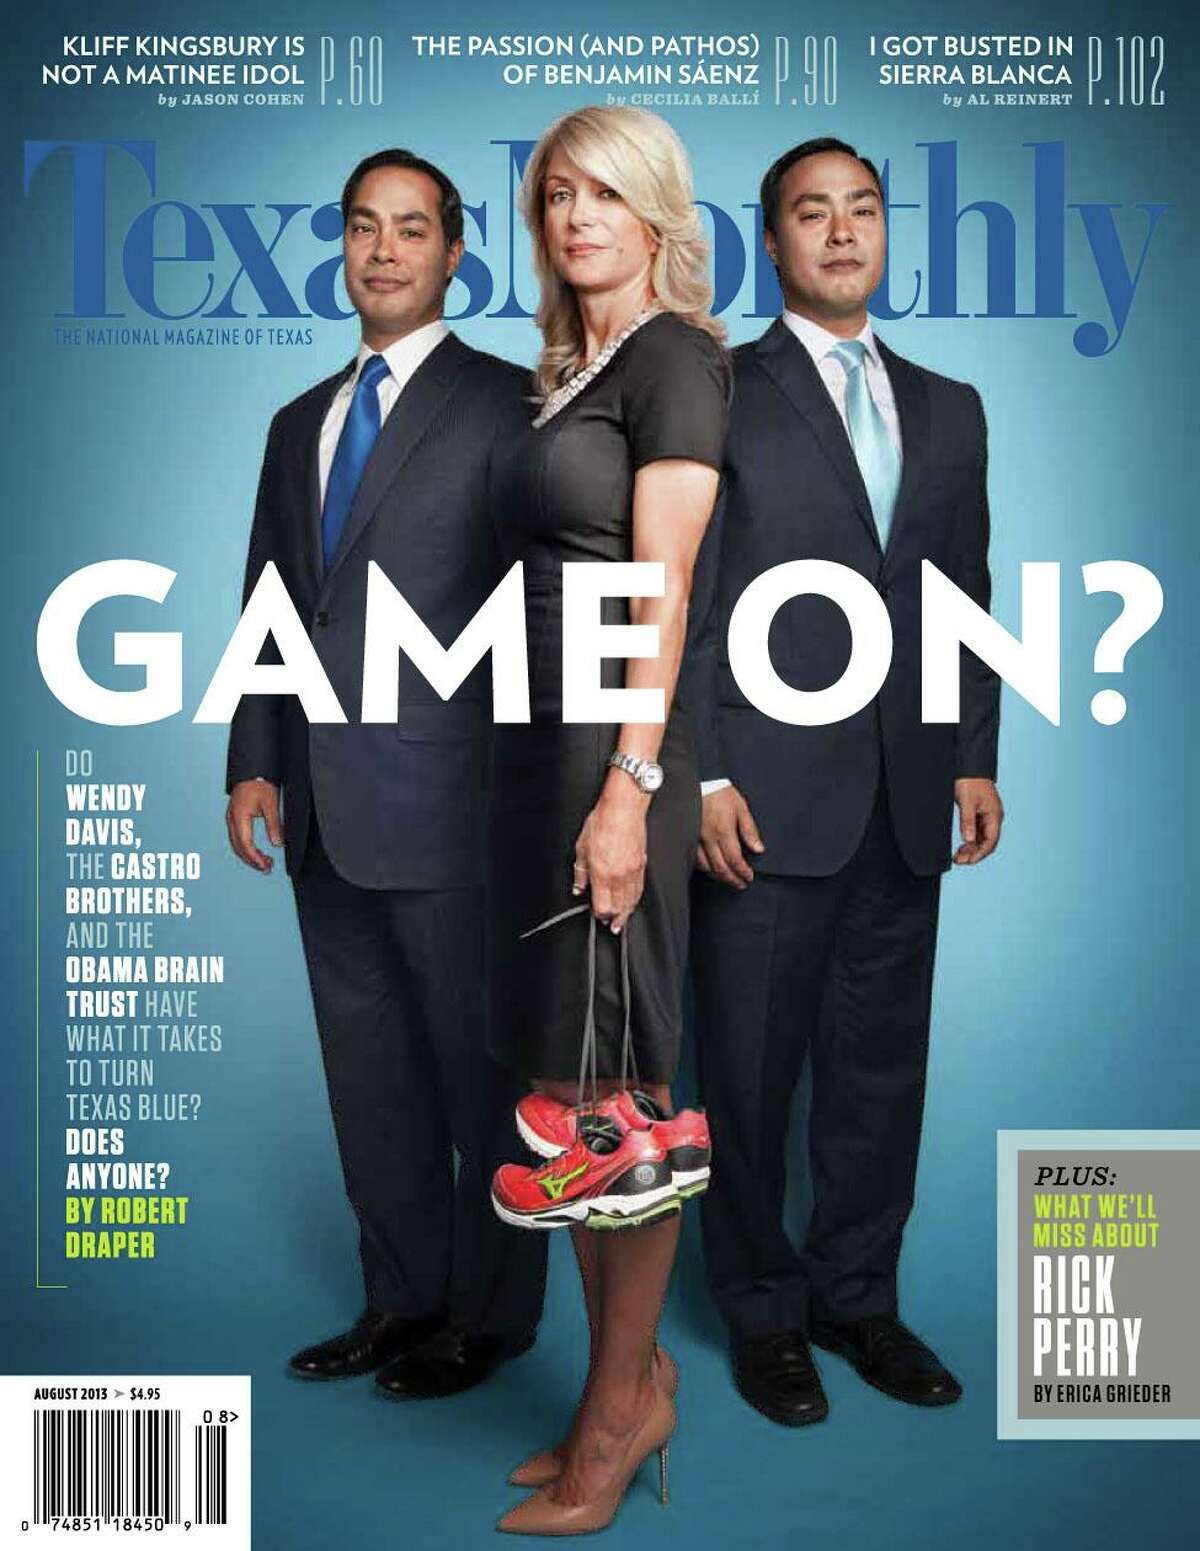 The August 2013 cover of Texas Monthly magazine, featuring San Antonio Mayor Julian Castro, left, State Senator Wendy Davids, and U.S. Representative Joaquin Castro, is seen in an image taken from the magazine's Twiiter feed.